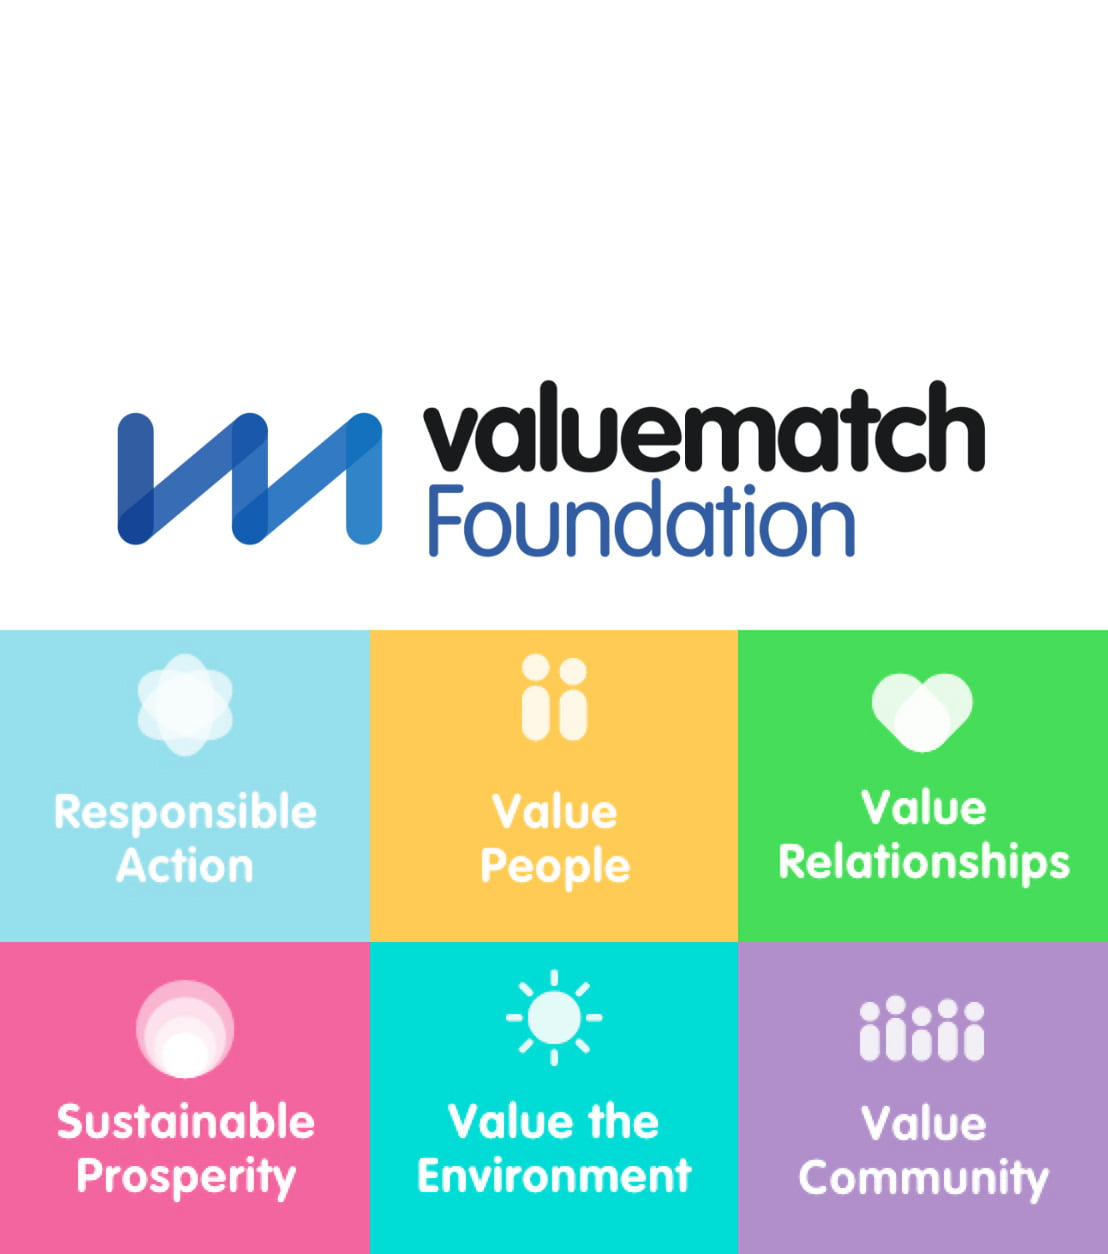 Value Match Foundation and values